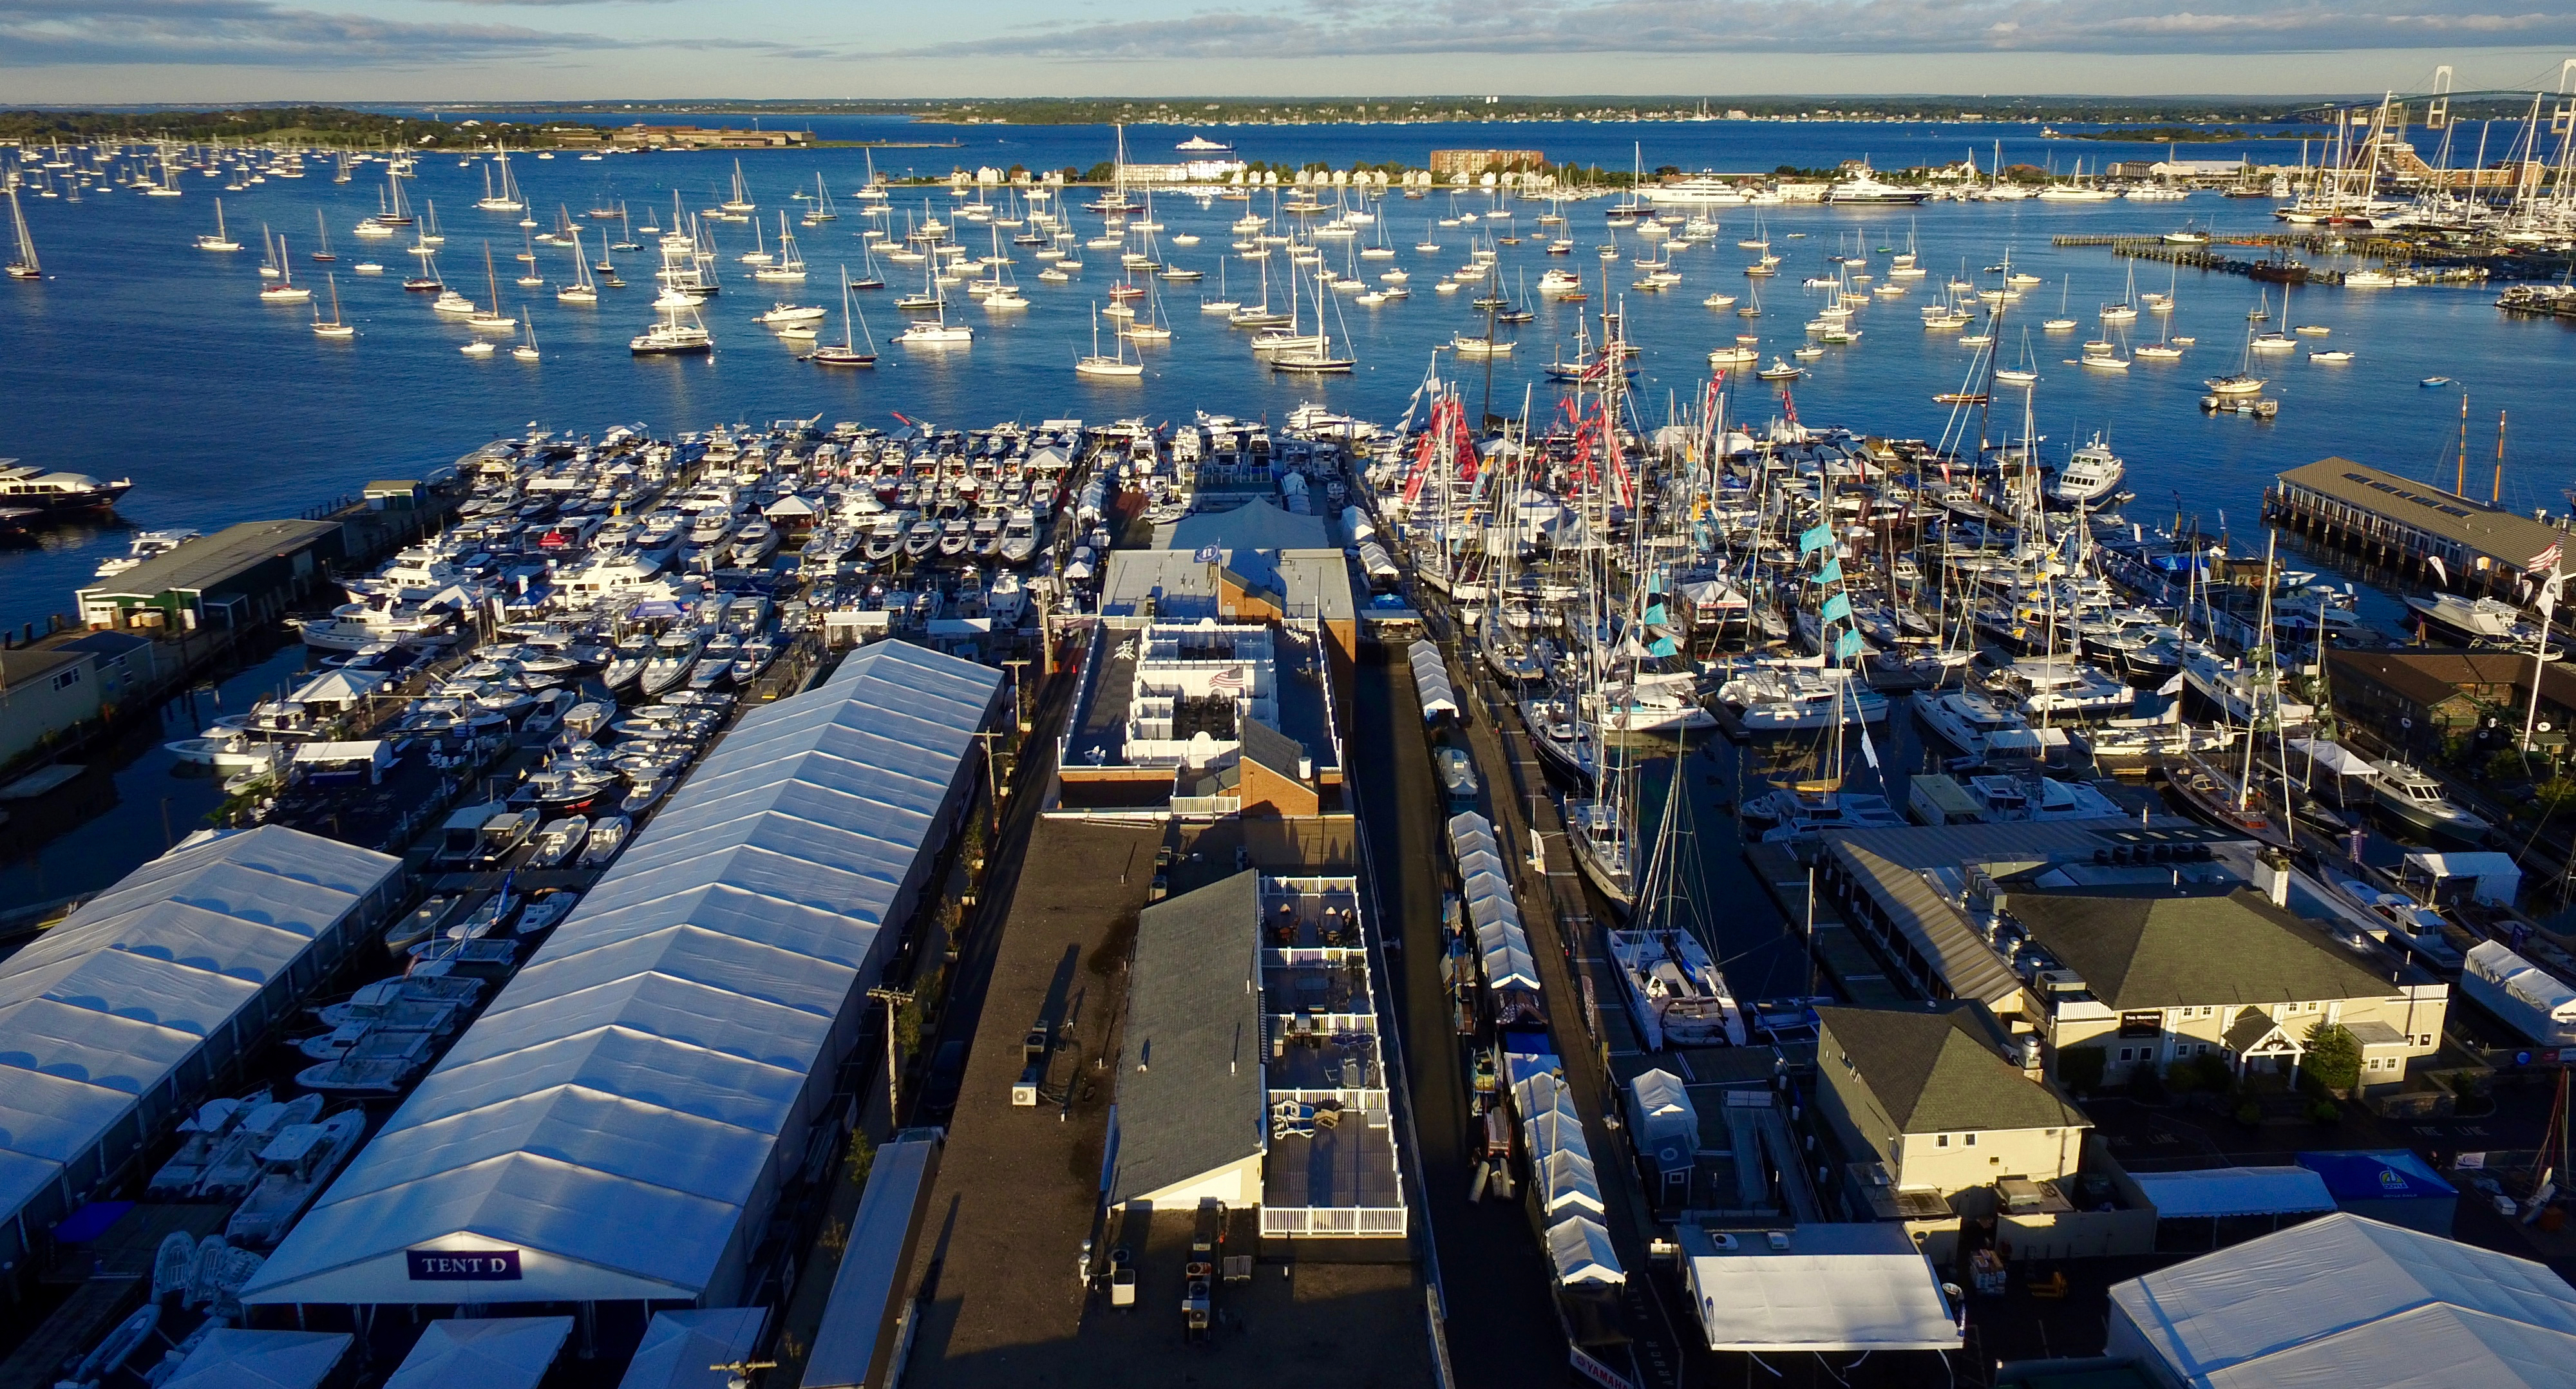 Annual Newport International Boat Show Offers Fun and Educational Opportunities for Everyone On and Off the Water